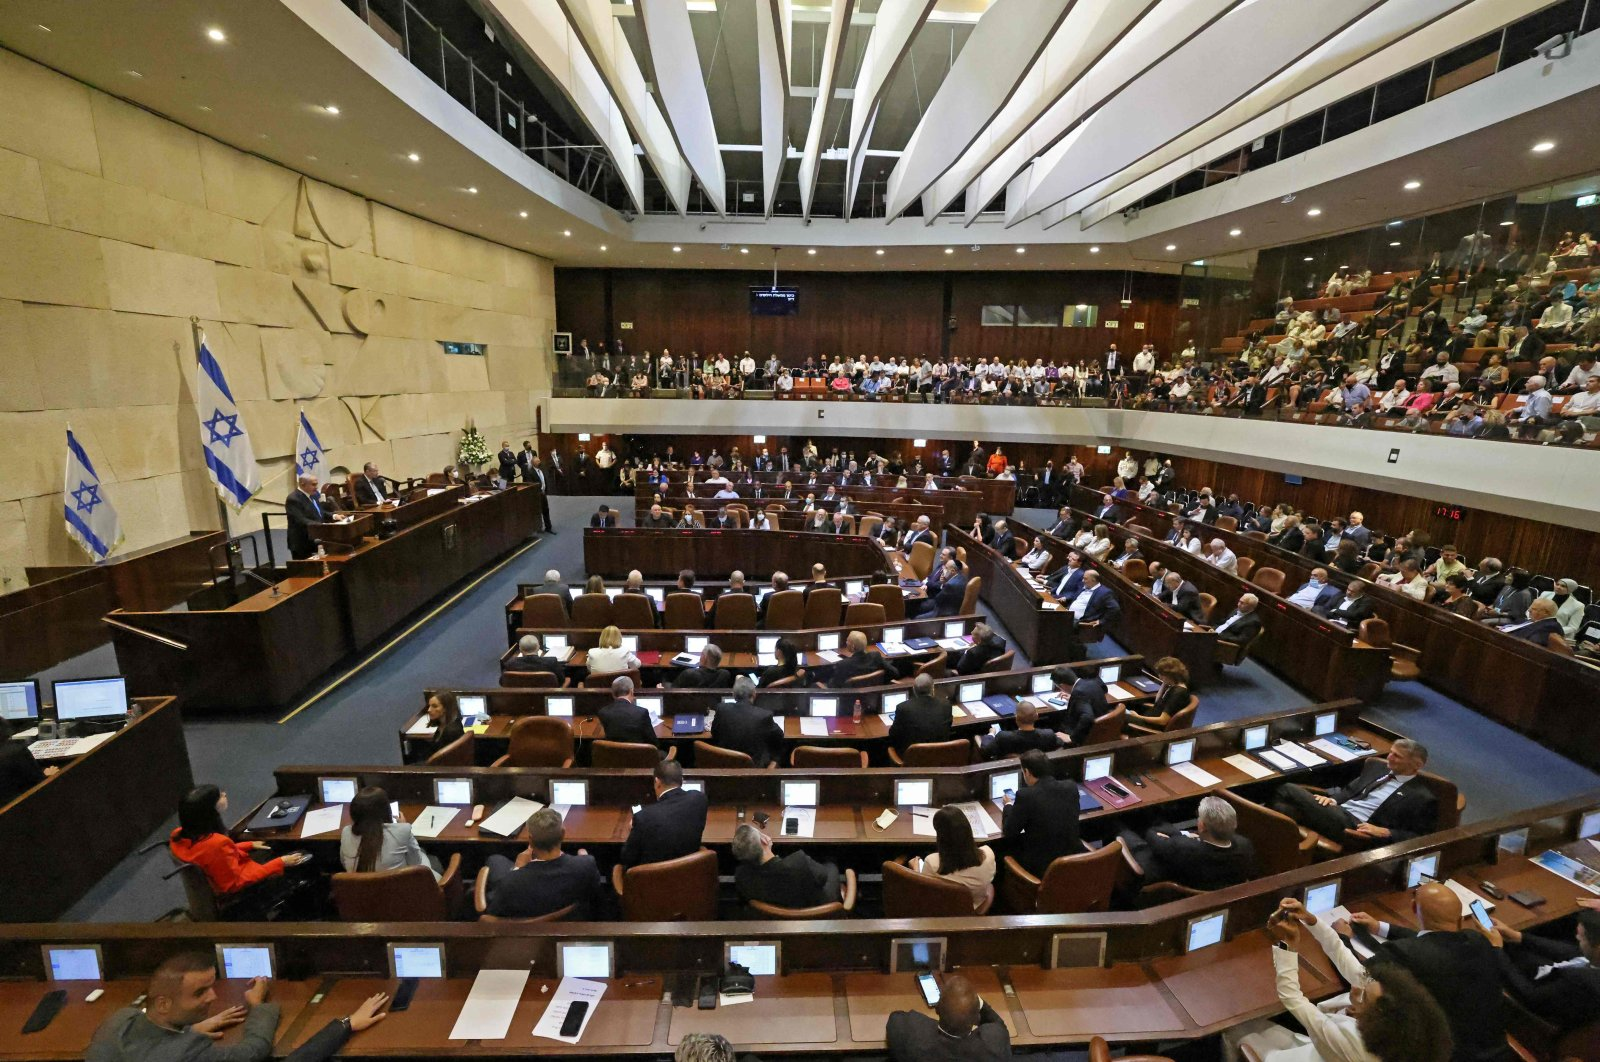 Israel's Prime Minister Benjamin Netanyahu addresses lawmakers during a special session to vote on a new government at the Knesset in Jerusalem, June 13, 2021. (AFP Photo)